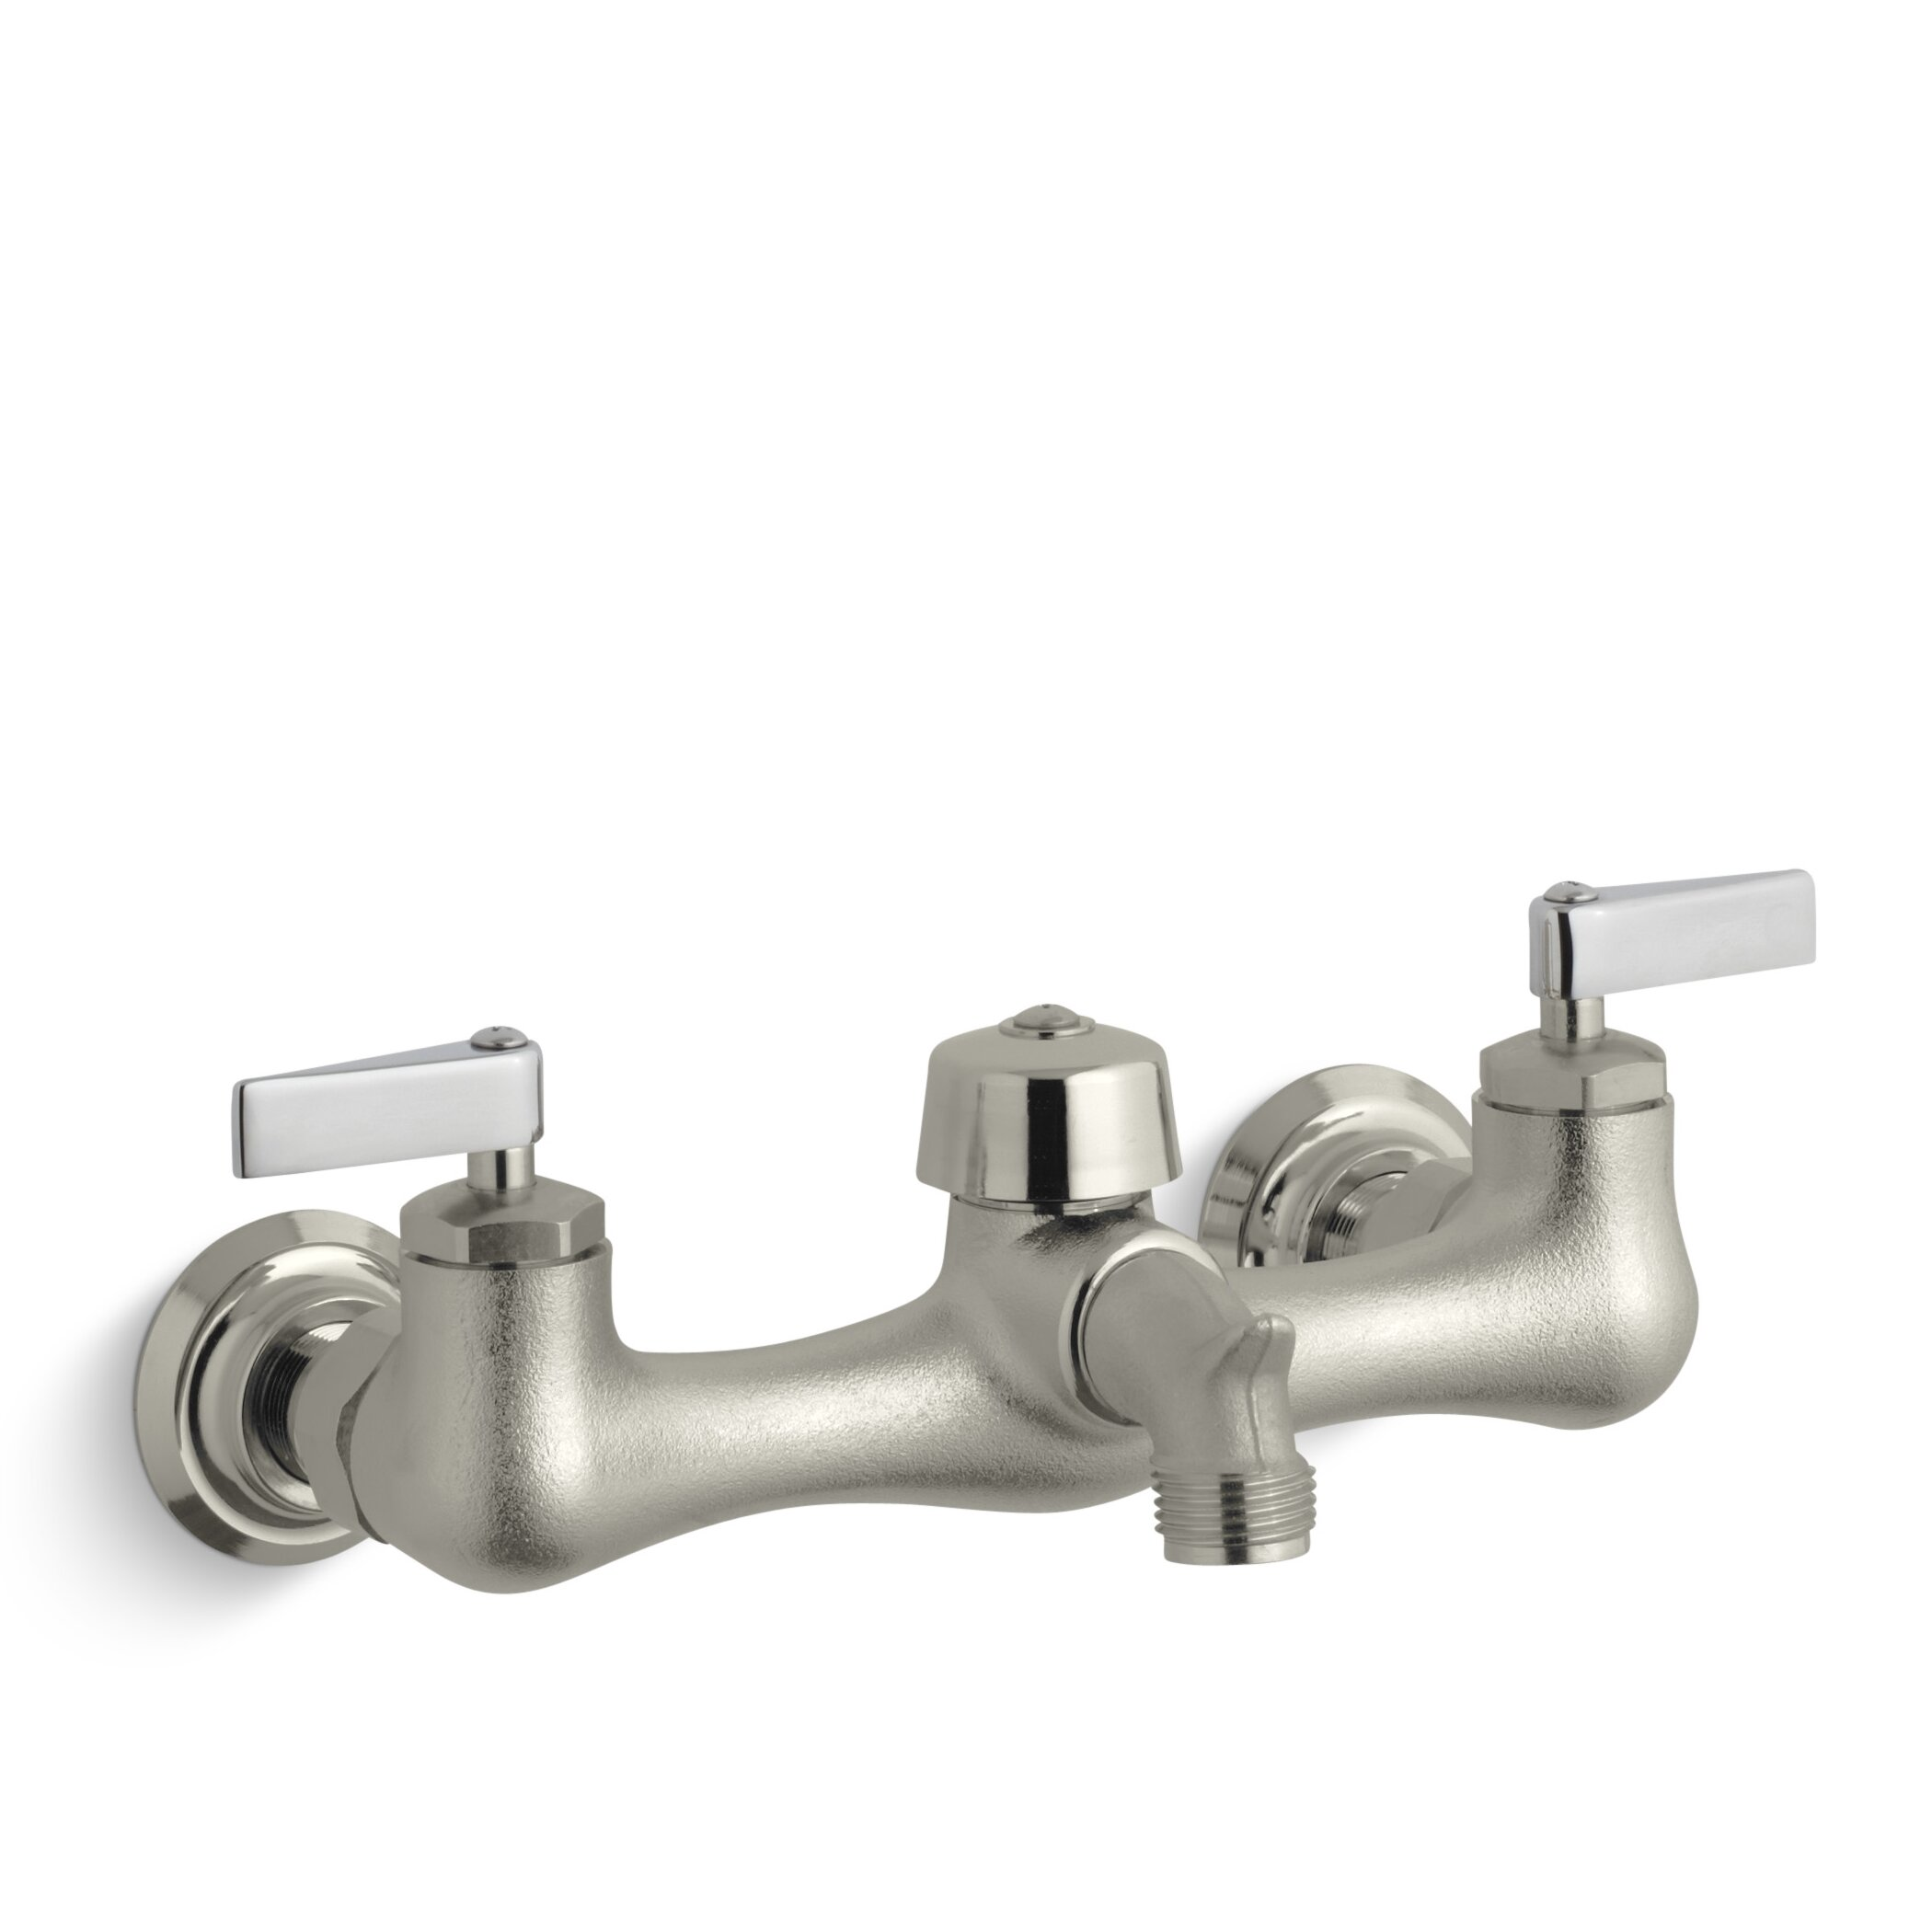 Kohler Knoxford Double Lever Handle Service Sink Faucet With Vacuum Breaker Threaded Spout